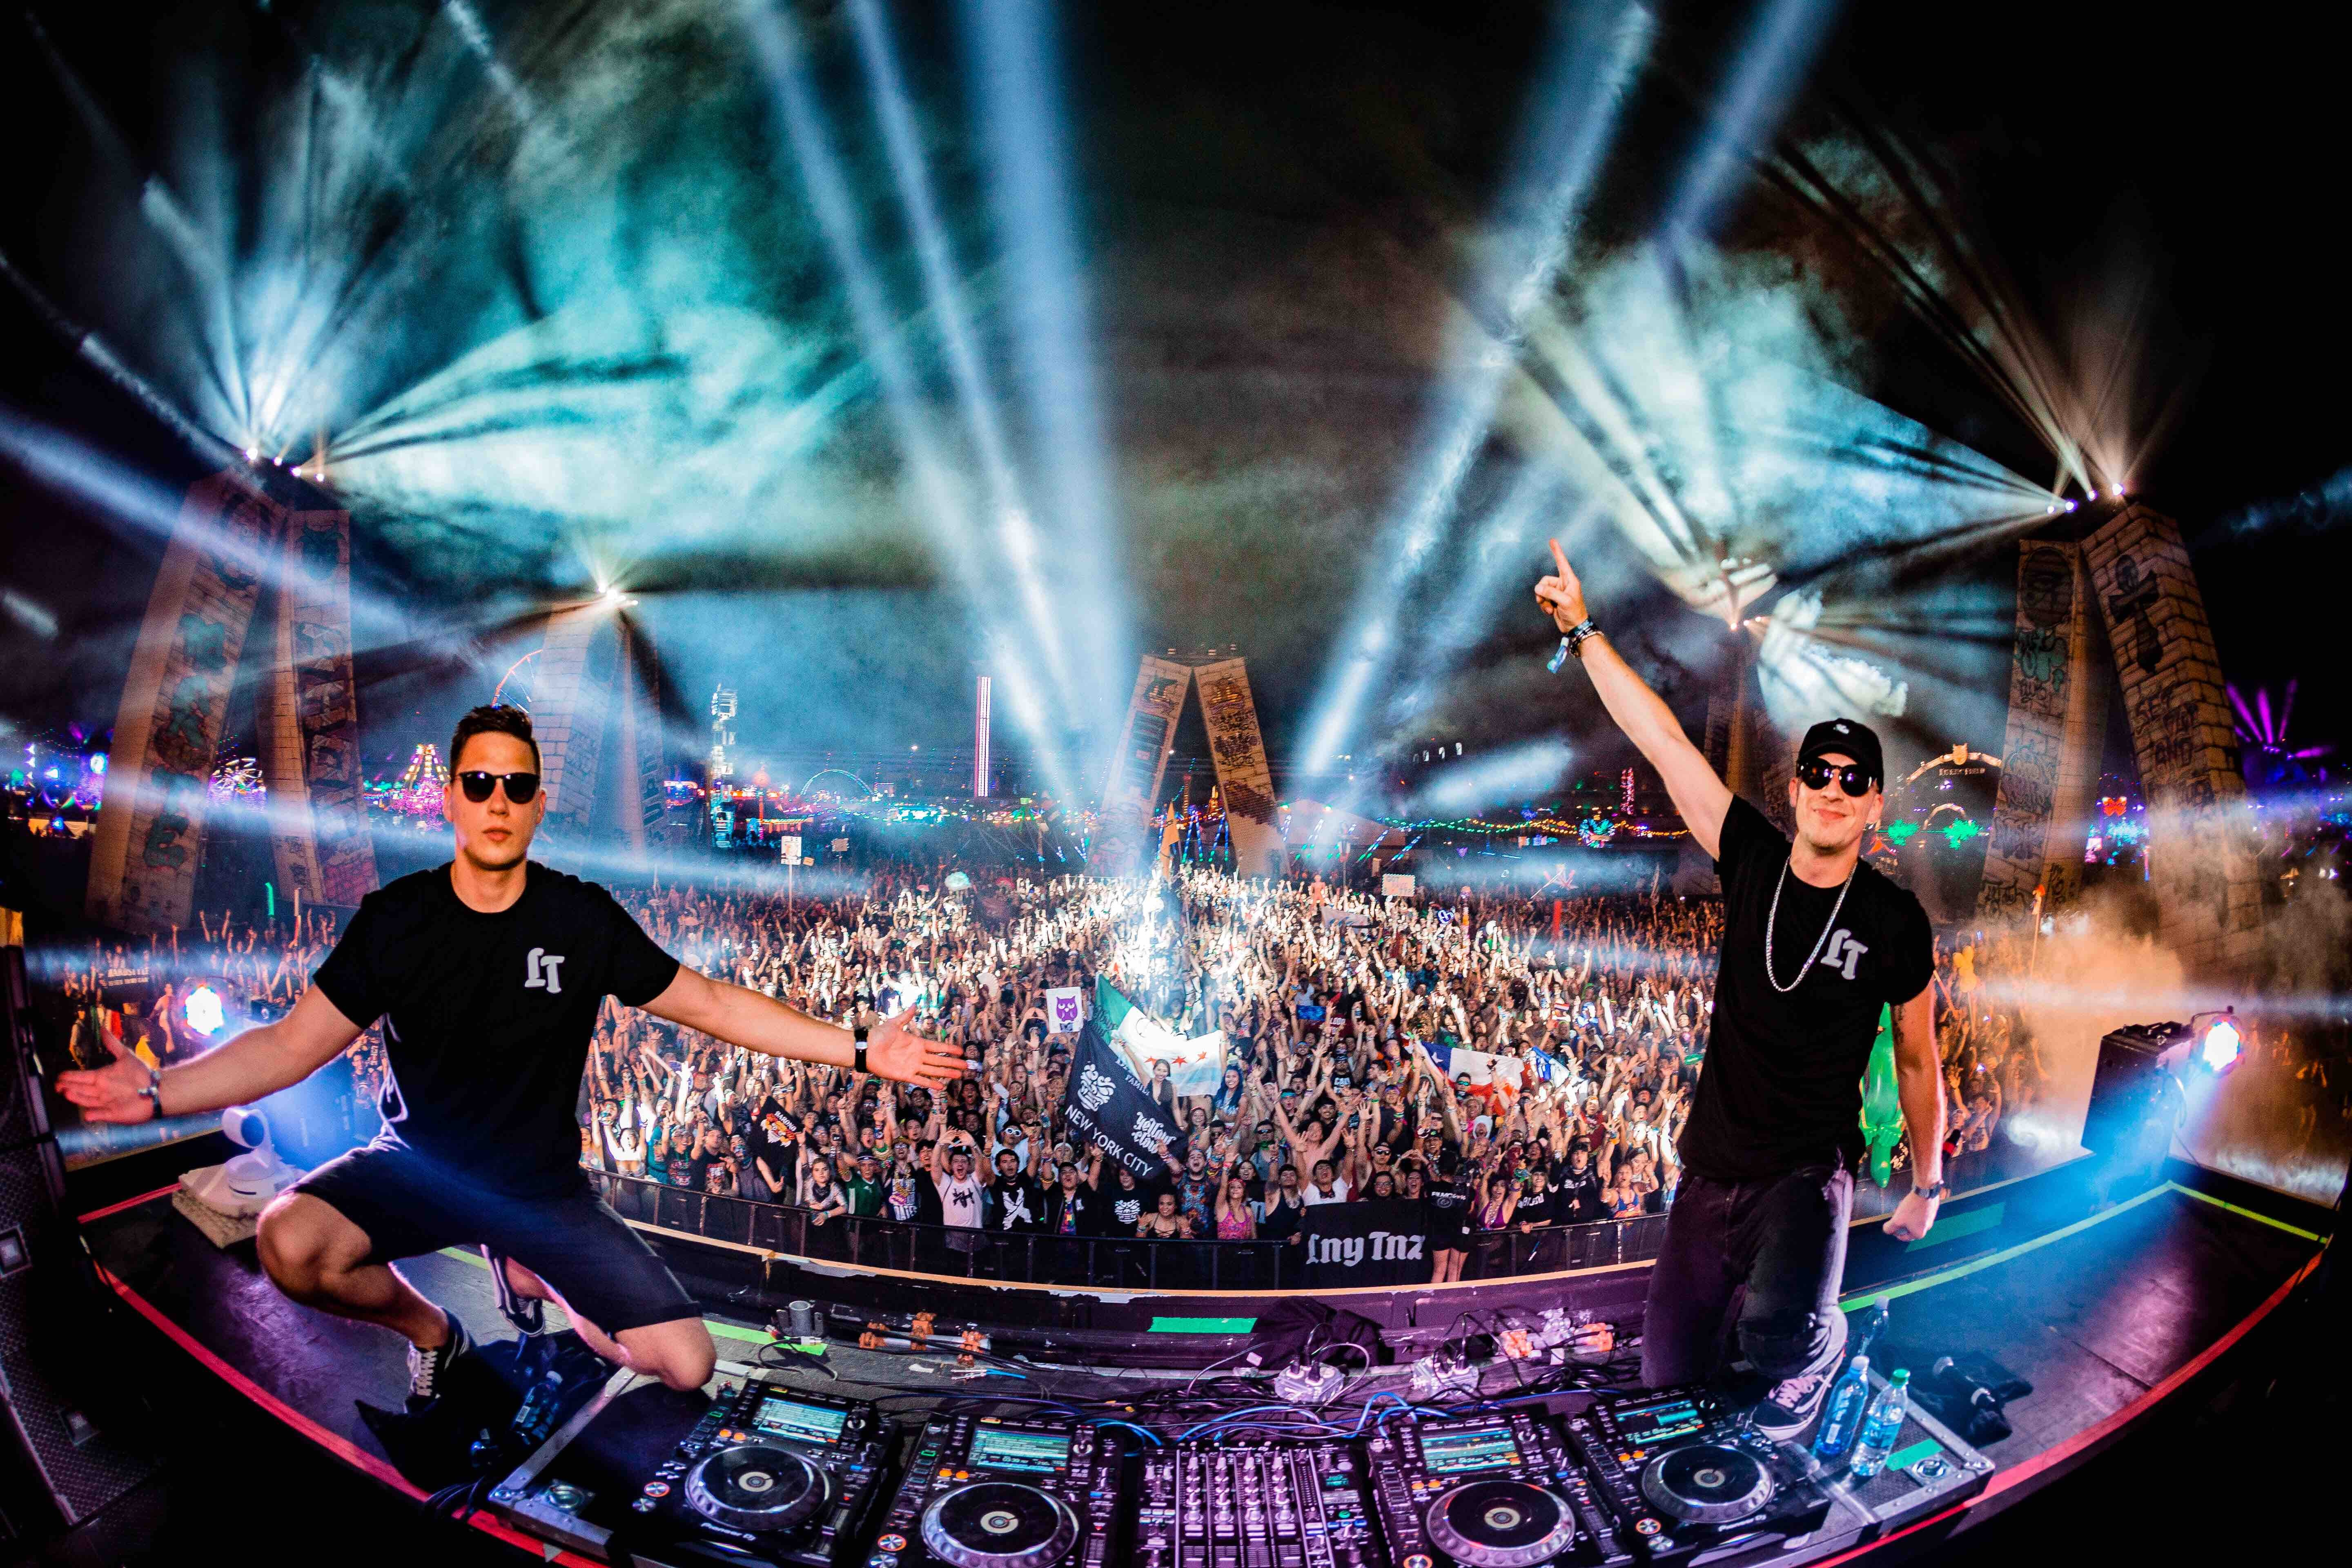 DJs looking at the camera during the Electric Daisy Carnival with an excited crowd behind them